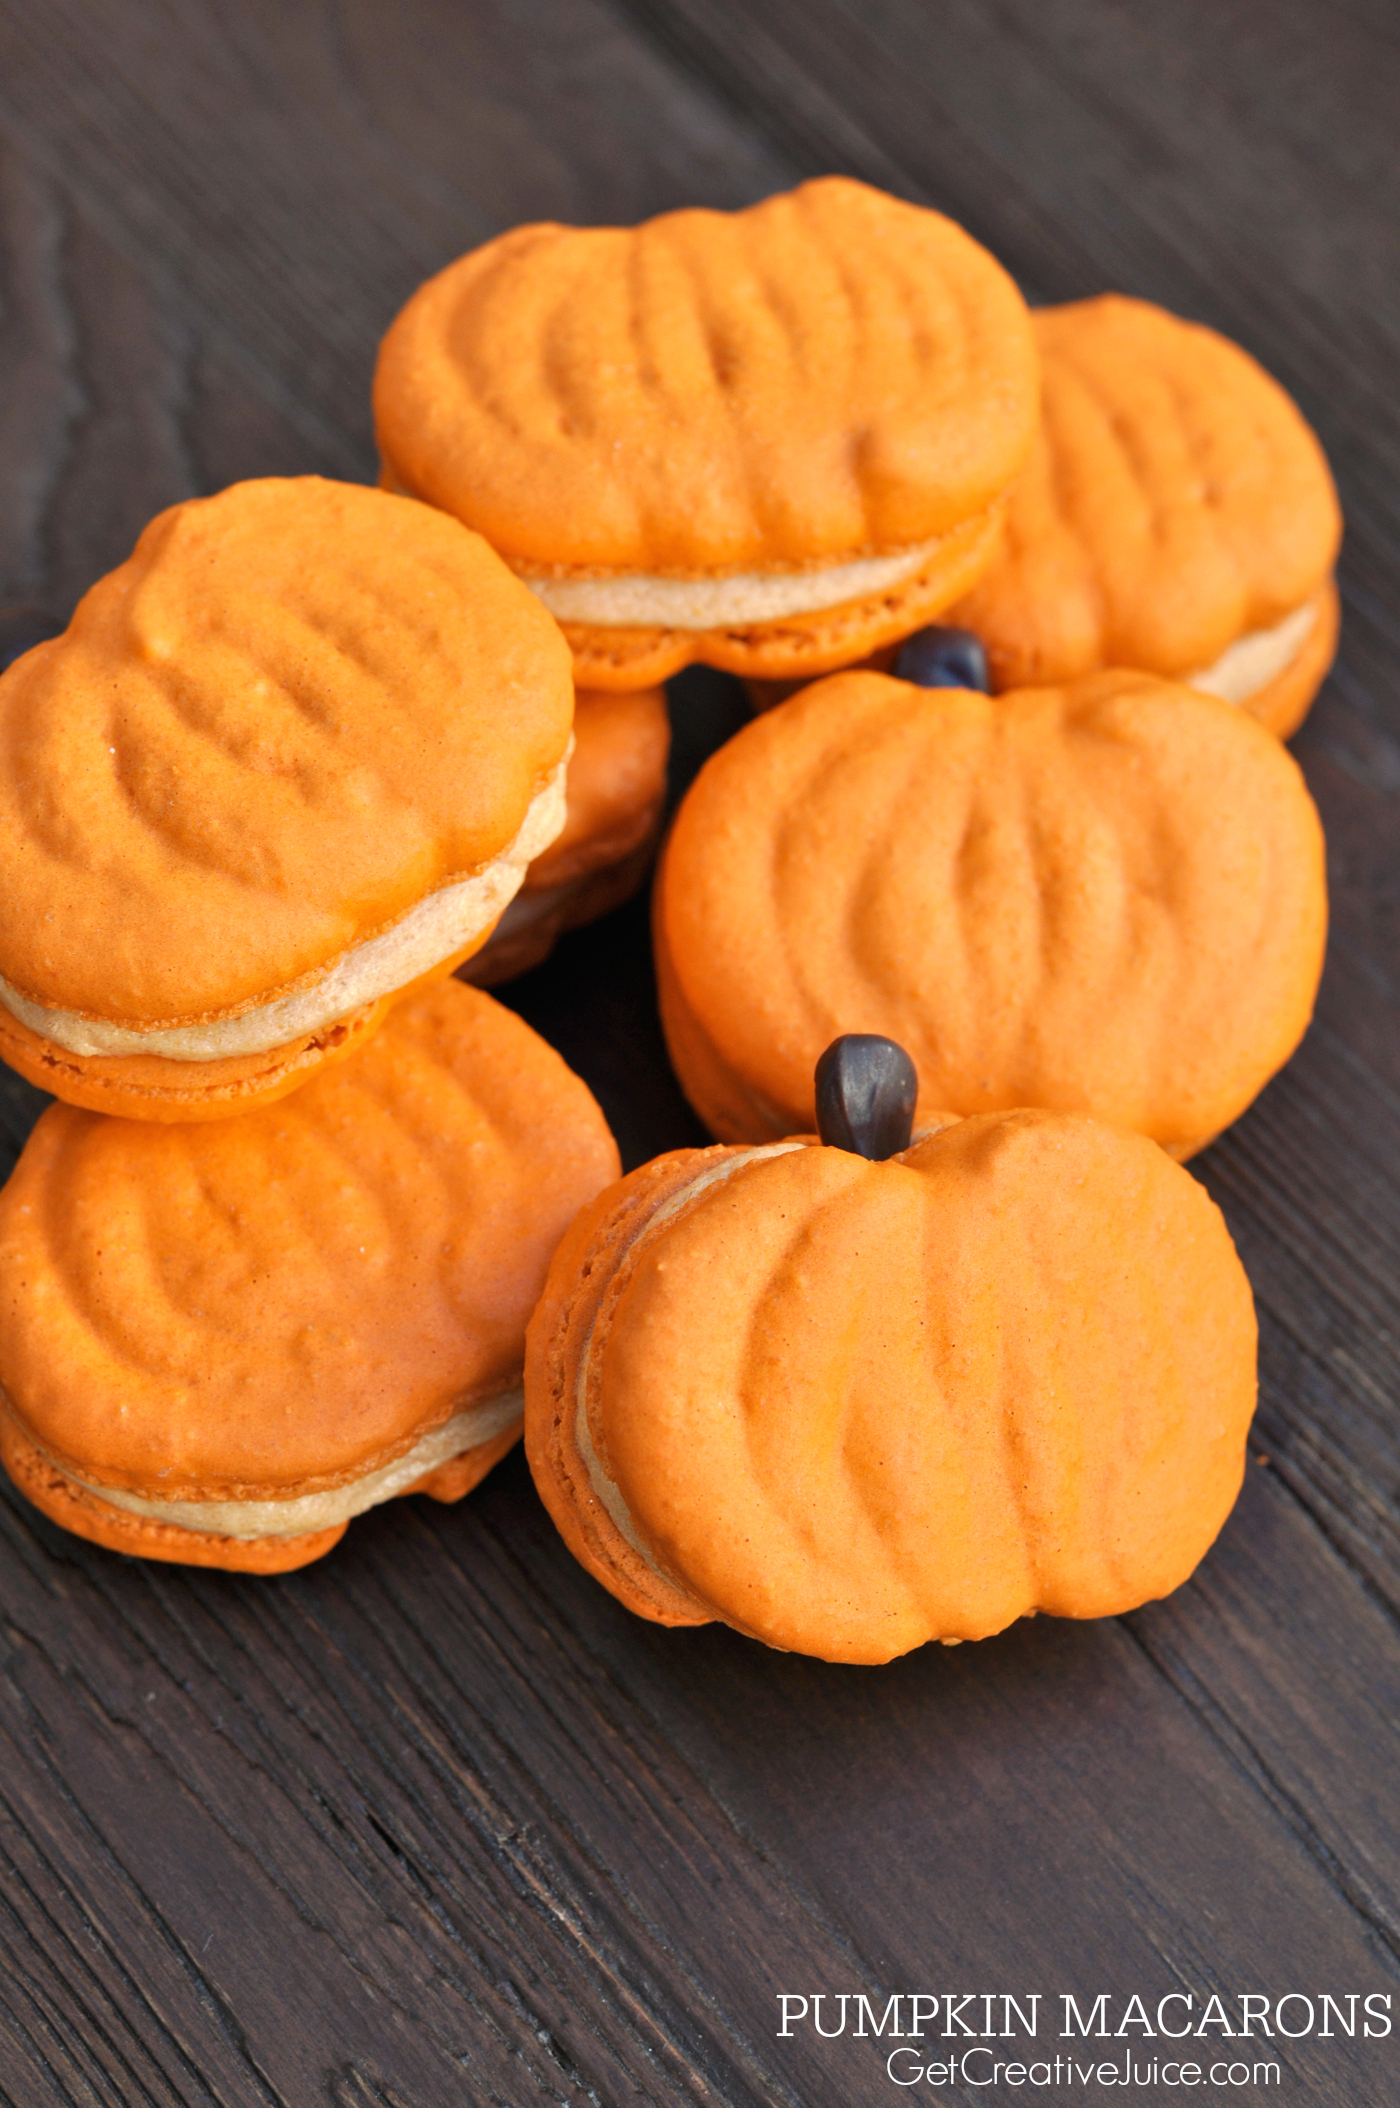 Pumpkin Macarons - Recipe, Tutorial, and Printable Template